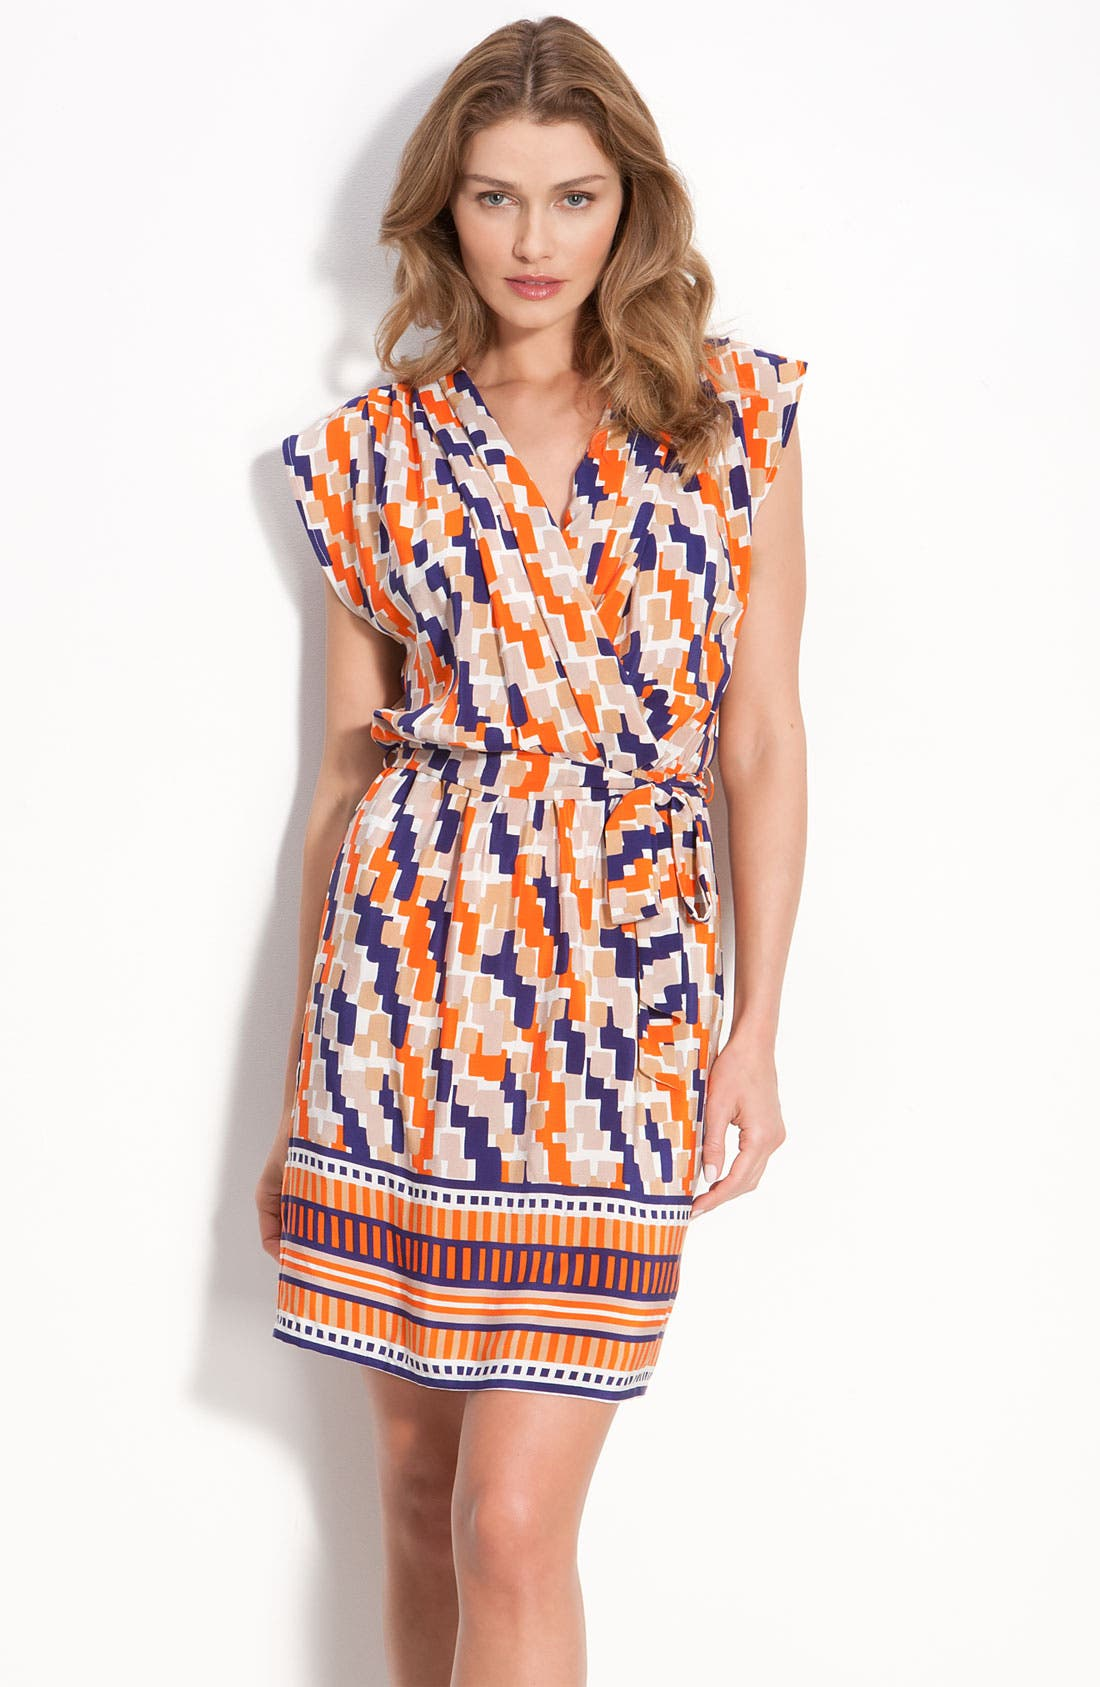 Main Image - Presley Skye 'April' Crêpe de Chine Faux Wrap Dress